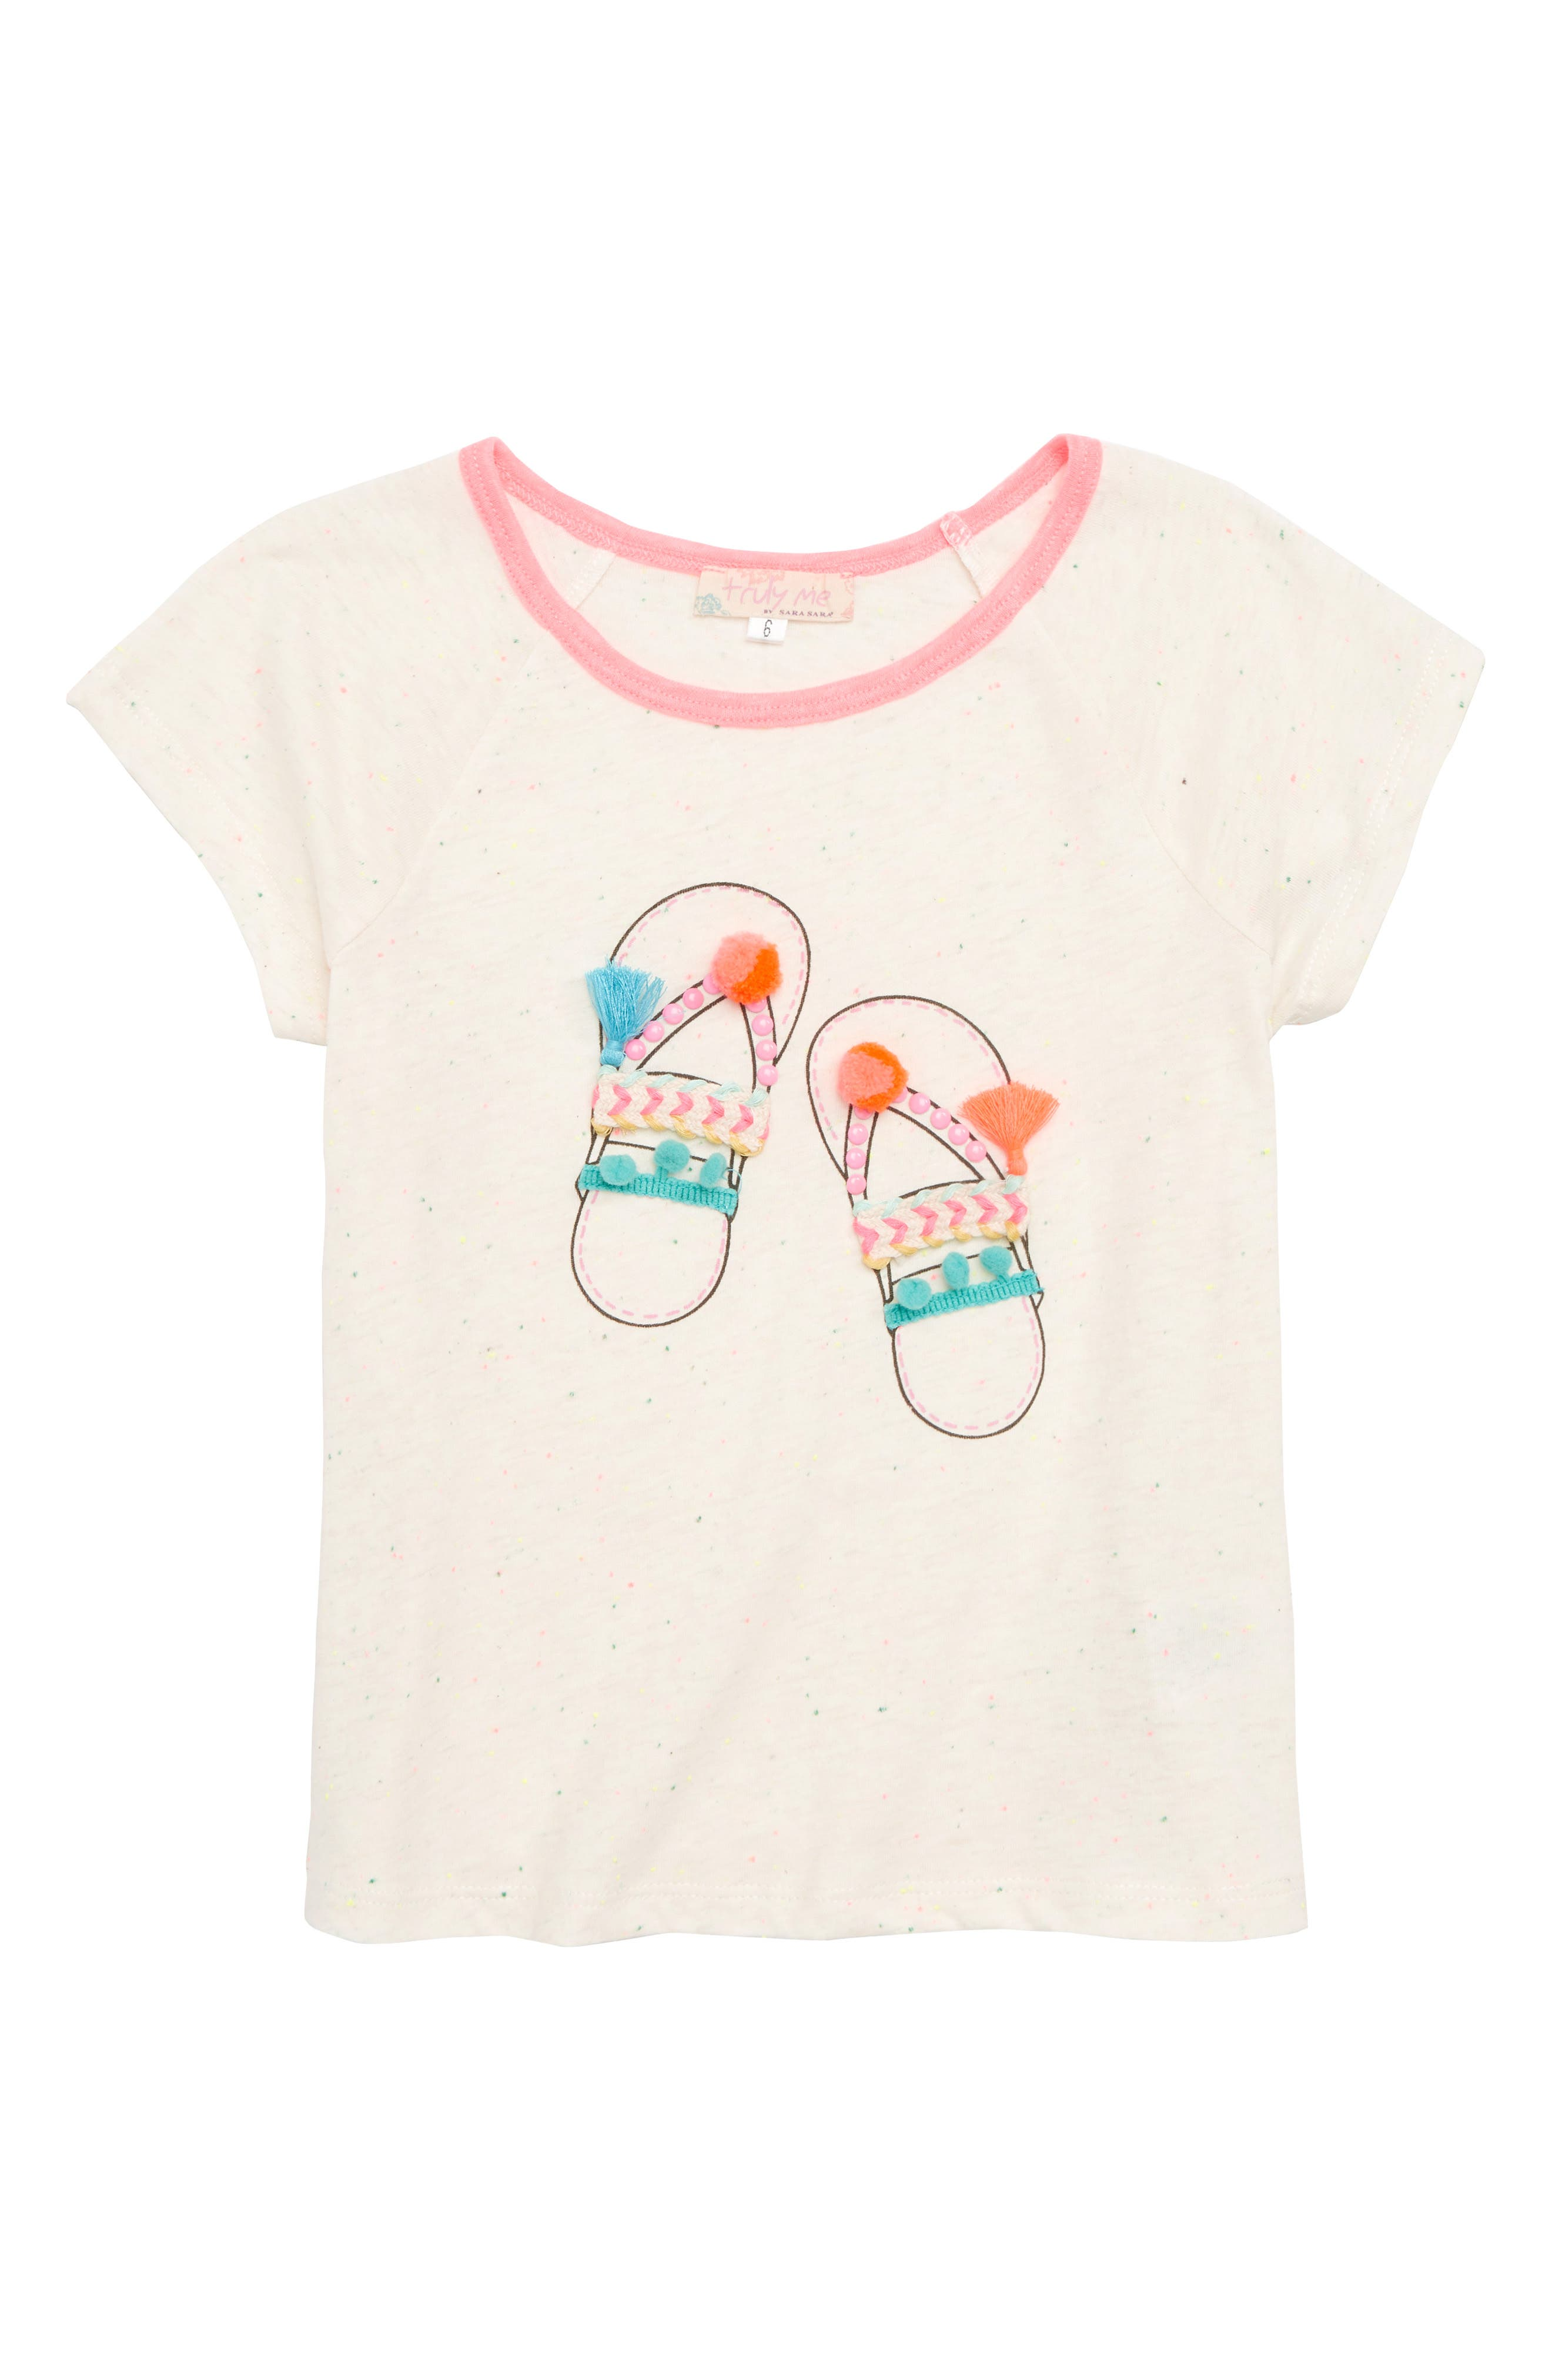 Main Image - Truly Me Sandals Embellished Tee (Toddler Girls & Little Girls)